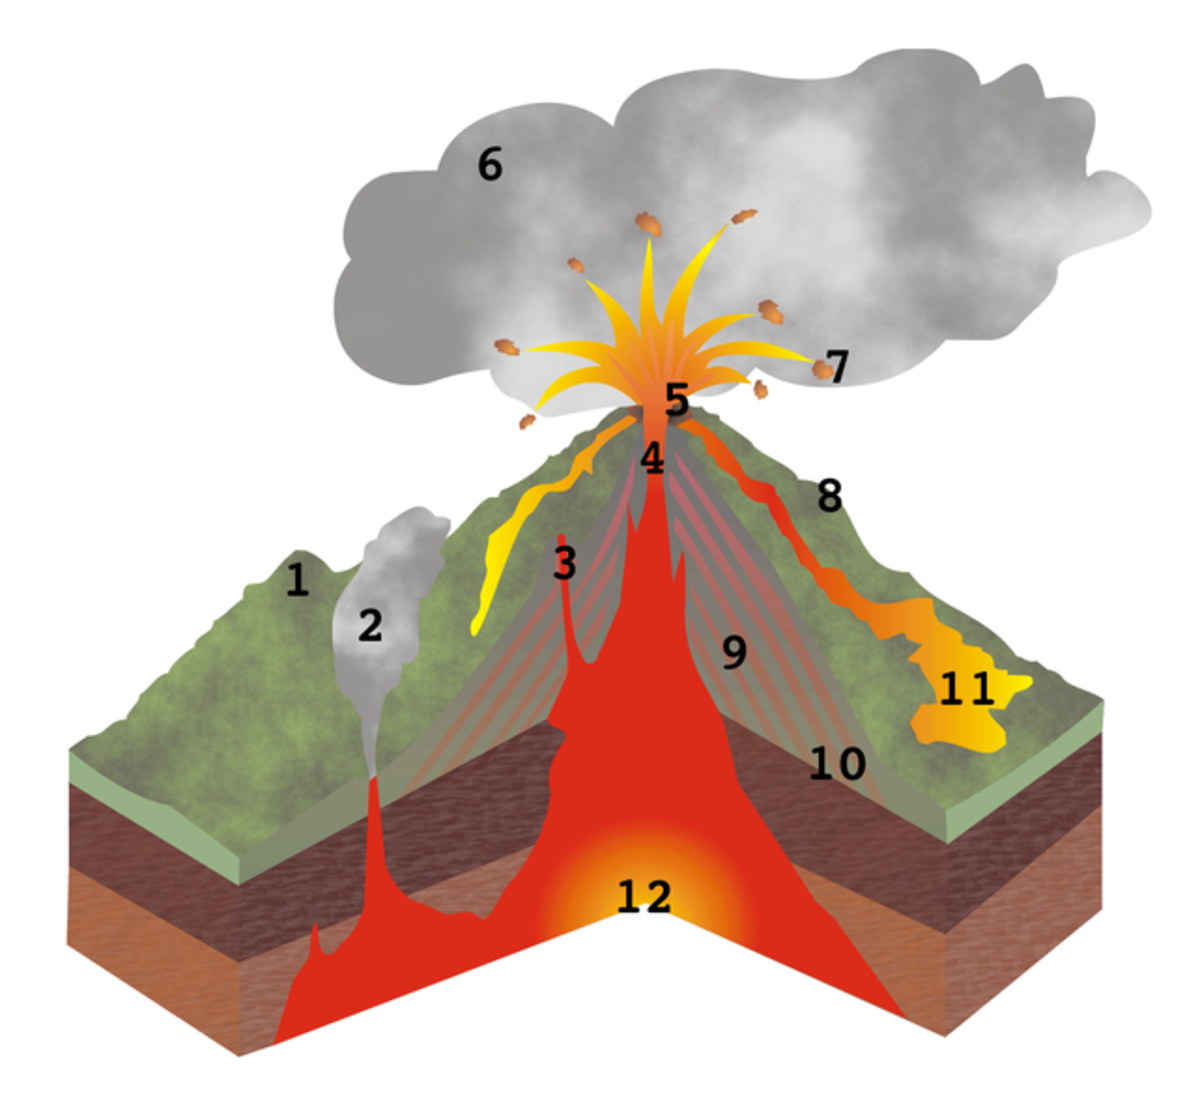 Volcan cross section. 1-Inactive volcan; 2-Fumarole; 3-Secondary volcanic pipe; 4-Volcanic pipe; 5-Crater; 6-Ash cloud; 7-Volcanic bomb; 8-Volcan cone; 9-Ash bed; 10-Solid lava flow; 11-Lava flow; 12-Magmatic chamber.